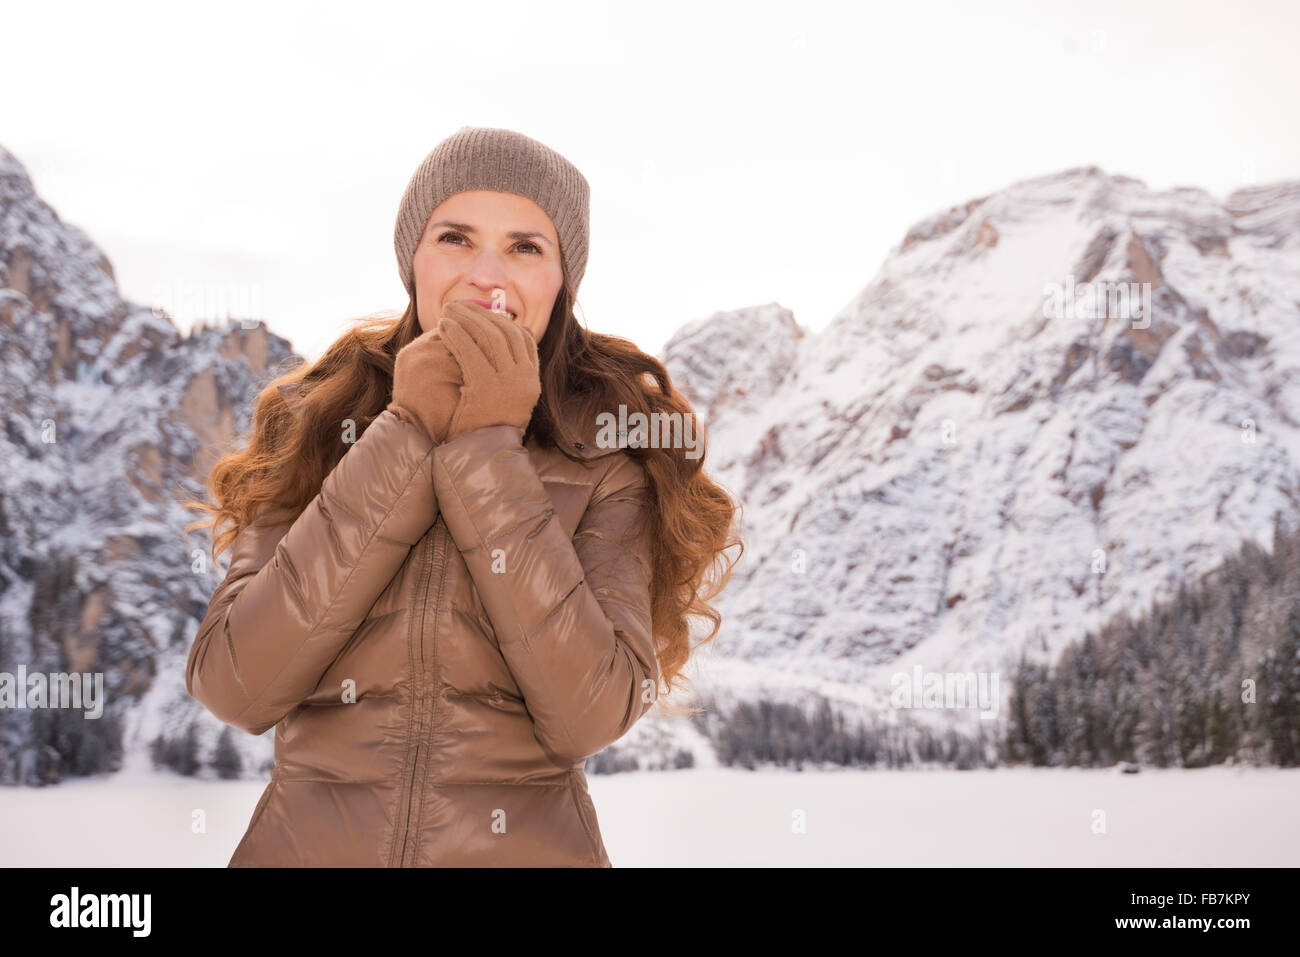 Energy-filling and exciting winter weekends in the mountains. Portrait of smiling young woman warming hands with - Stock Image